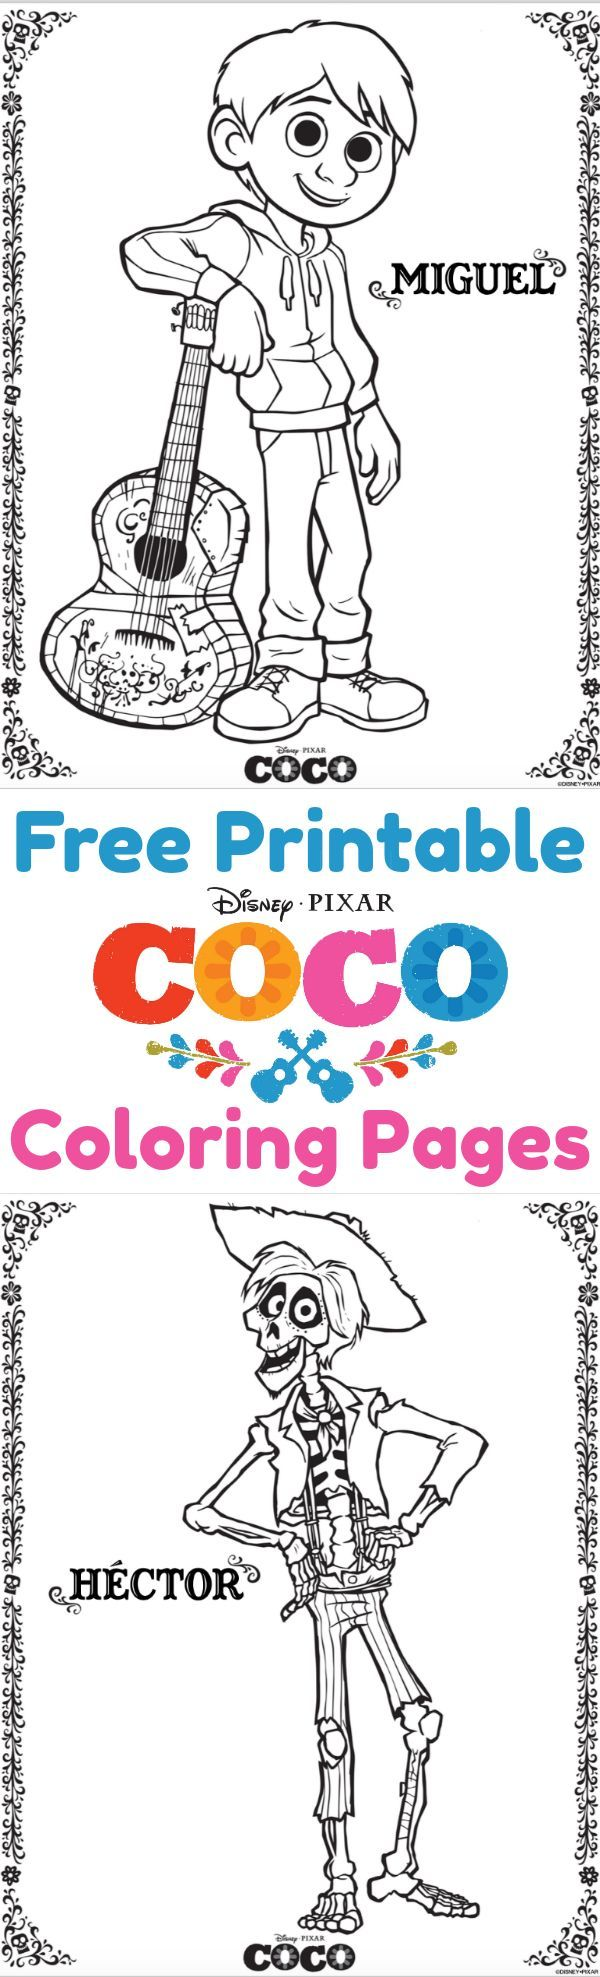 Download free Coco coloring pages and activity pages and